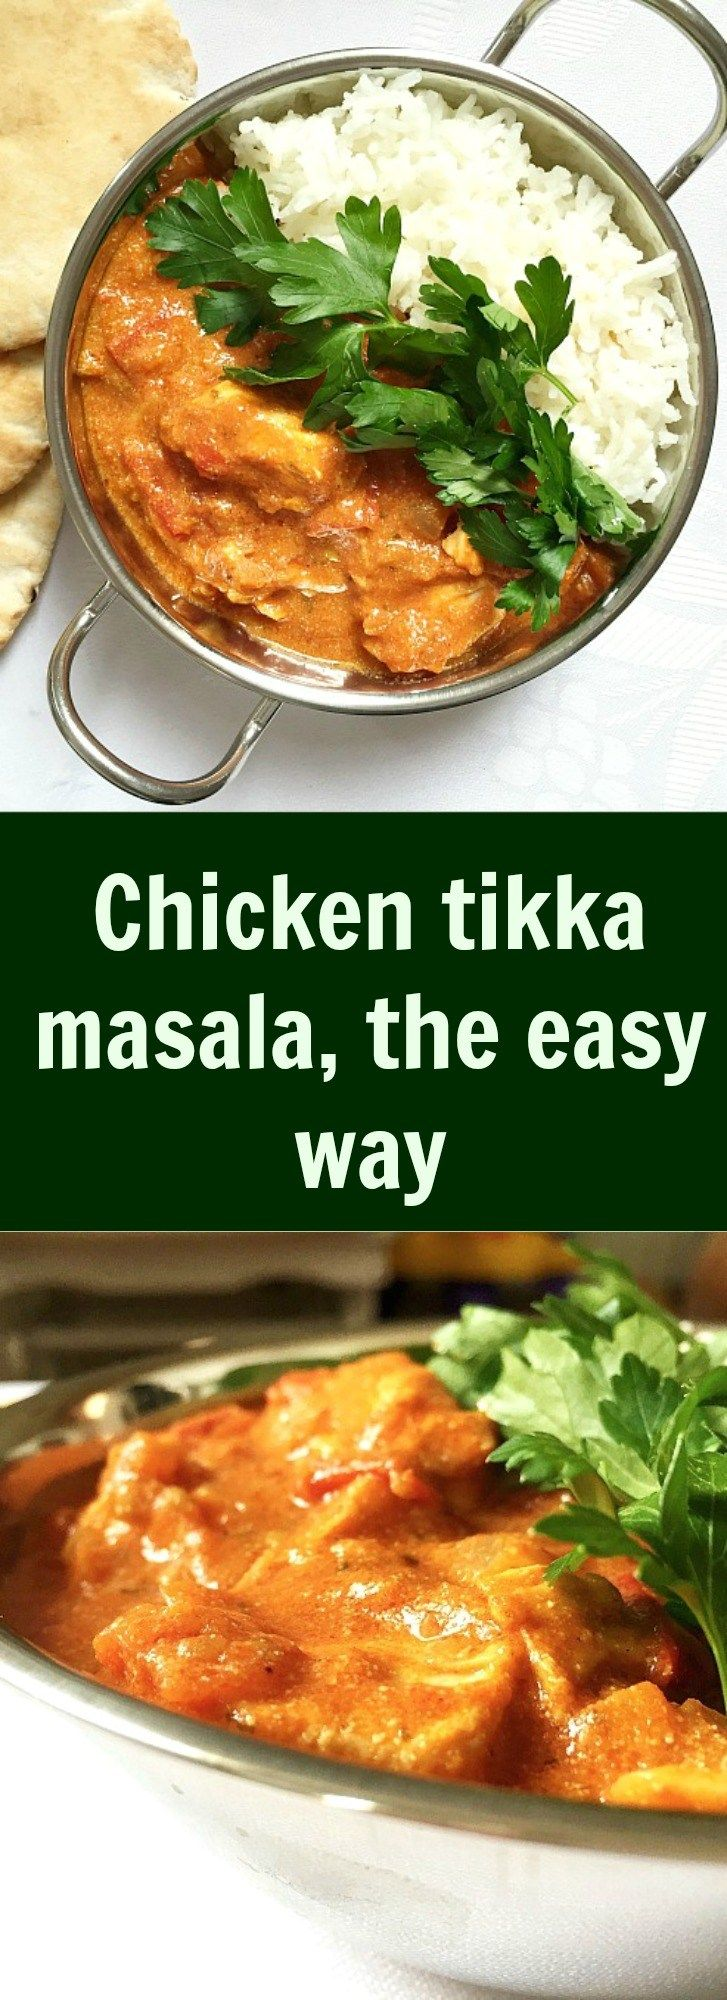 chicken tikka masala speech Chicken tikka masala speech a) who is the writer the writer is robin cook, who is the british foreign minister (ethos à knows what he is talking about) he is a member of parliament.